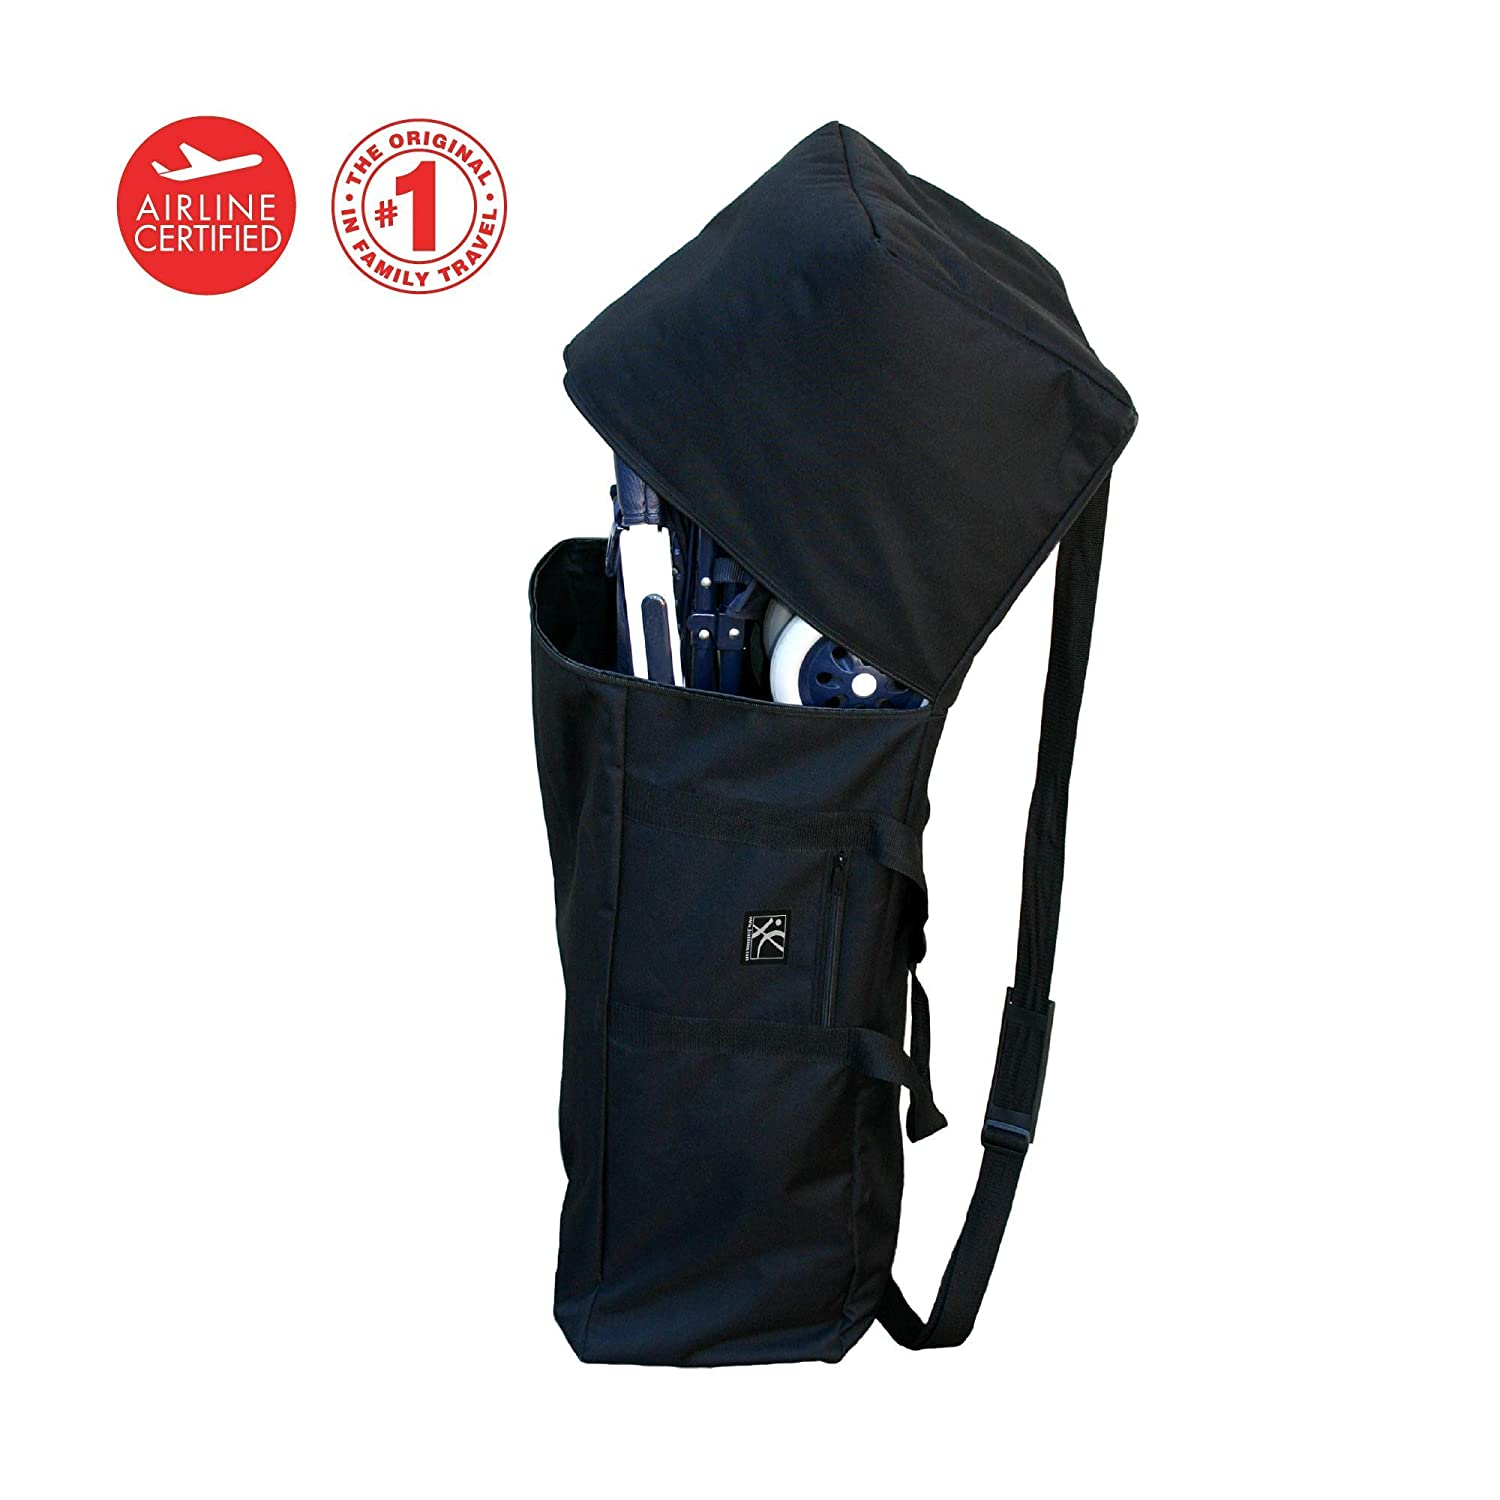 J.L. Childress Padded Umbrella Stroller Travel Bag, Durable and Lightweight, Water-Resistant, Gate Check, Includes ID Pocket and ID Card, Detachable Padded Shoulder Strap, Black